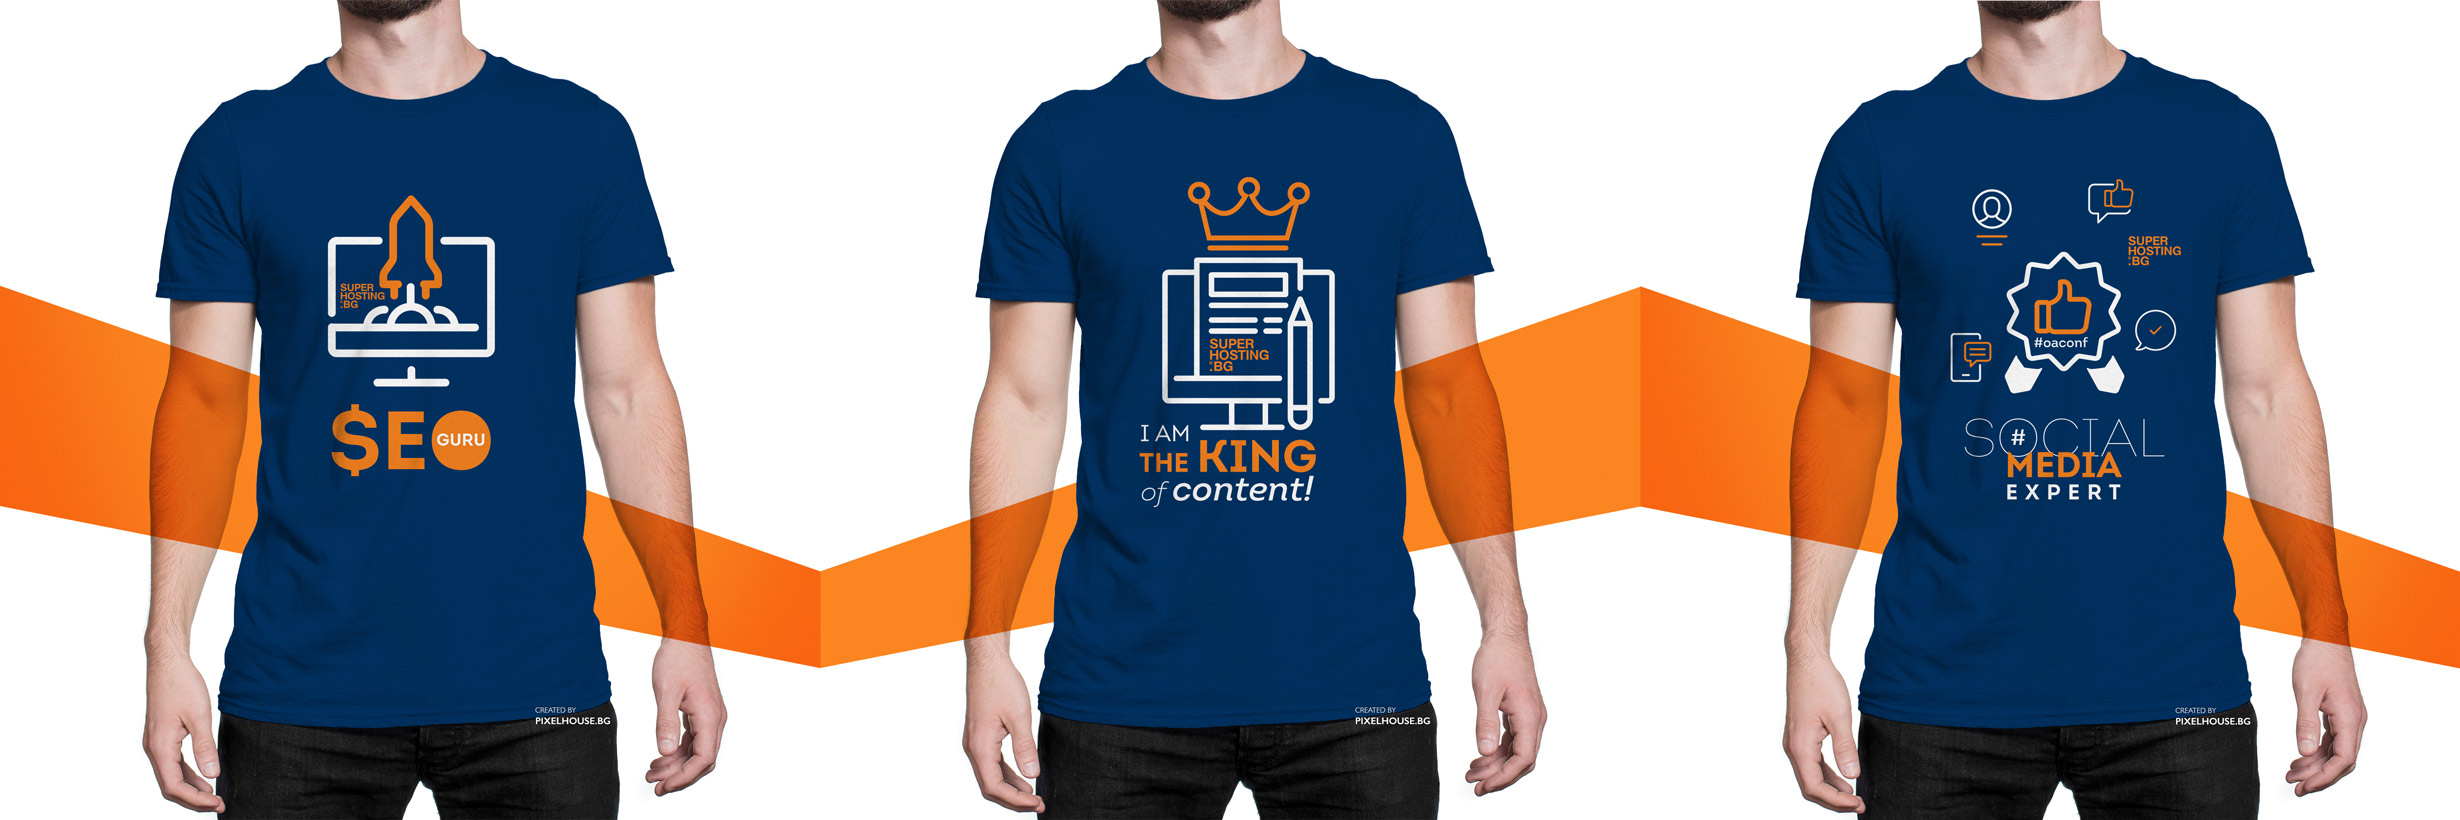 Superhosting T Shirts Design Pixel House Web Studio